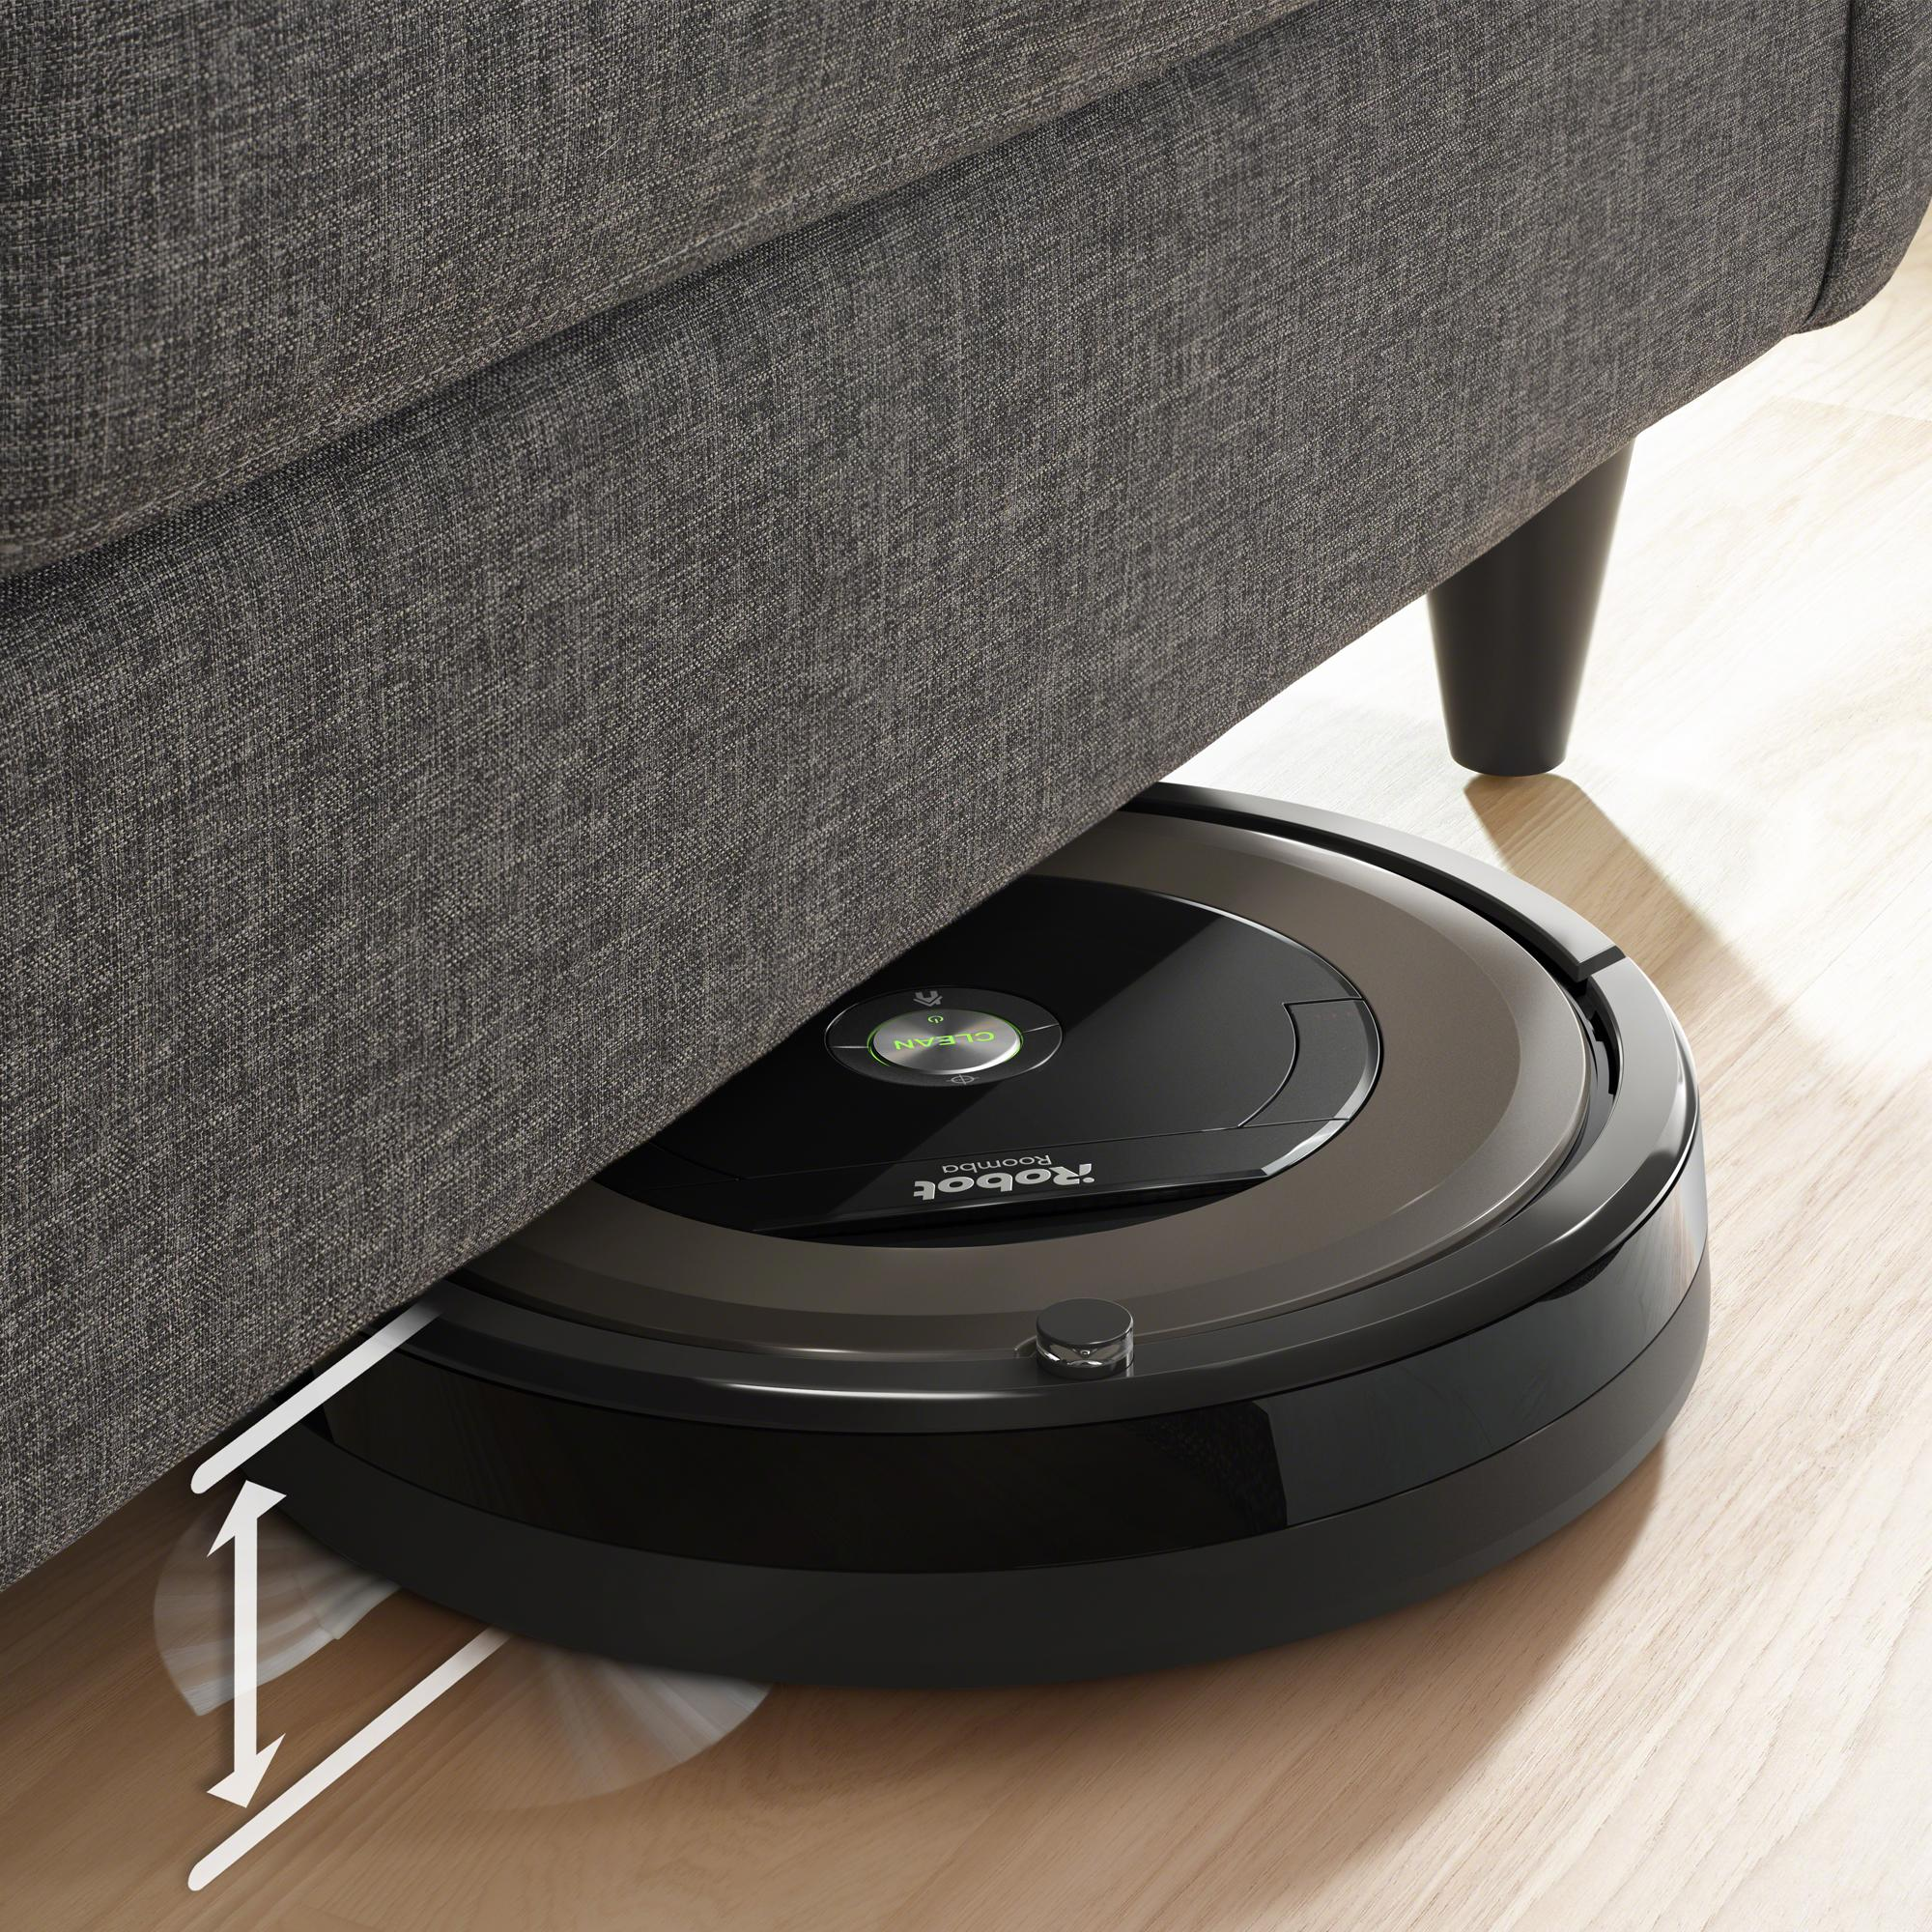 irobot roomba 890 wi fi connected robotic vacuum cleaner. Black Bedroom Furniture Sets. Home Design Ideas